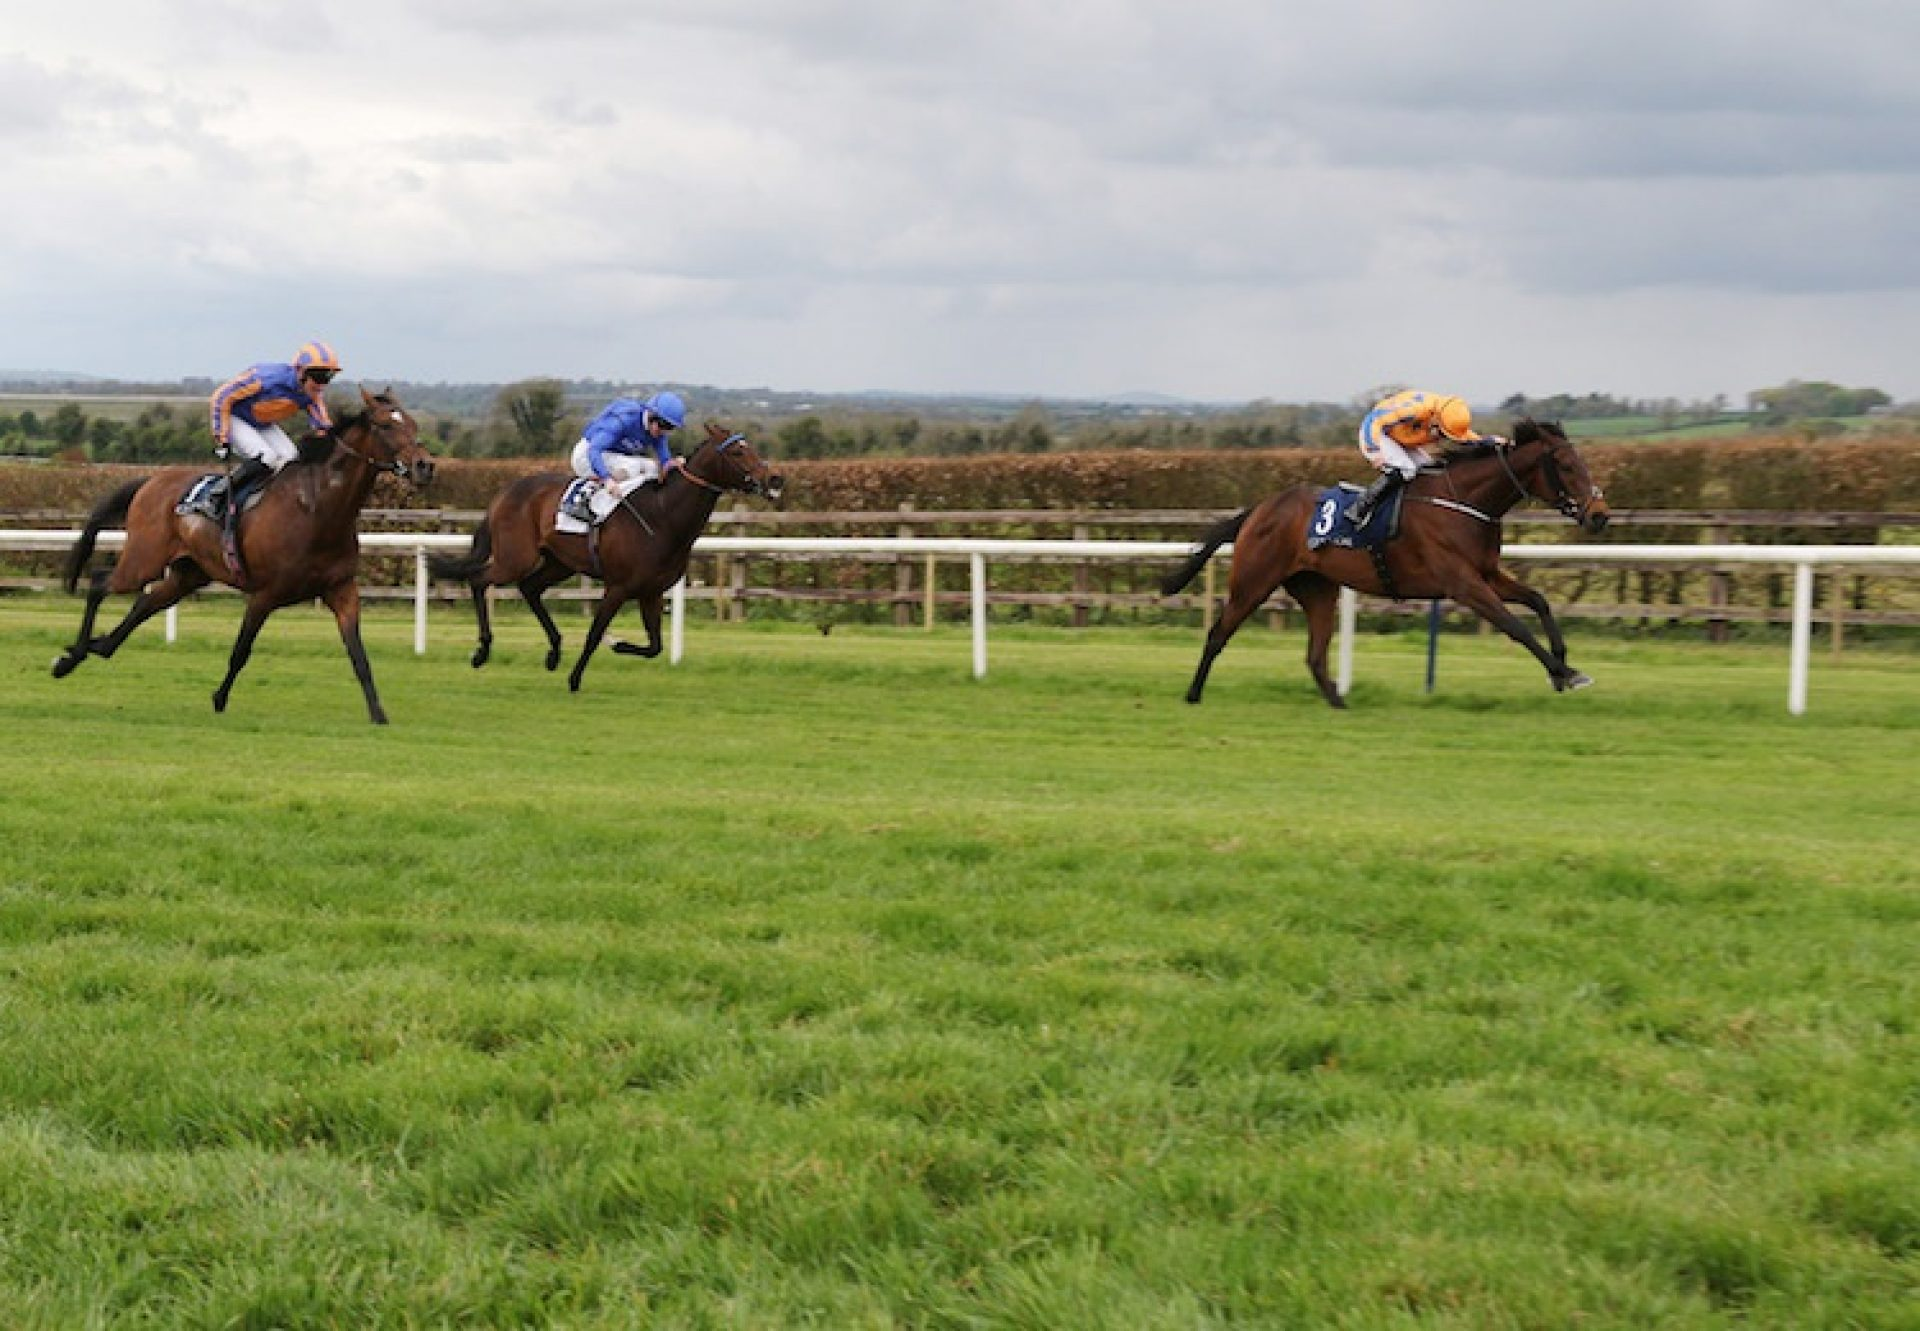 Torcedor (Fastnet Rock) winning the G3 Vintage Crop Stakes at Navan